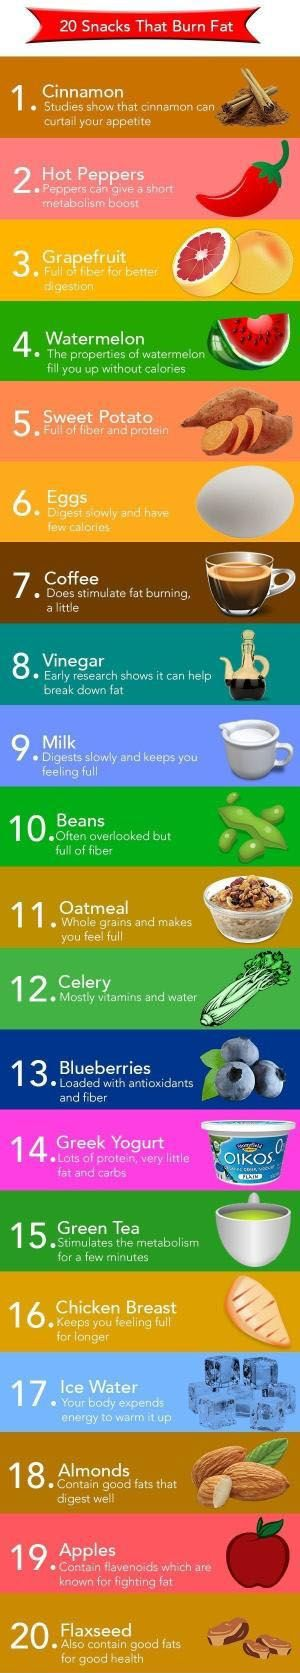 Best 25 detox for belly fat ideas on pinterest belly fat diet best 25 detox for belly fat ideas on pinterest belly fat diet plan detox for weight loss and drinks for weight loss ccuart Images